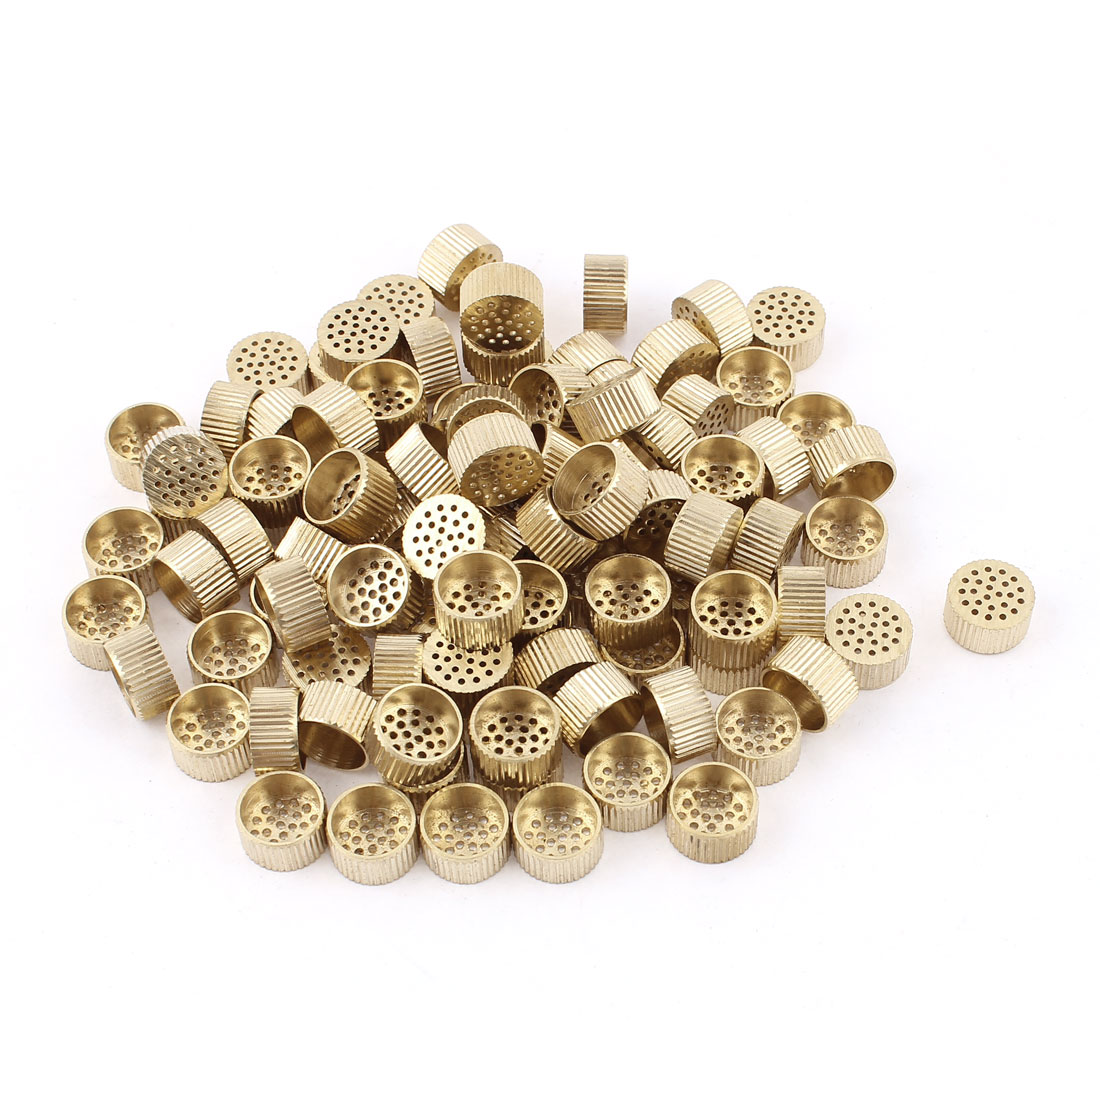 100pcs Gold Tone Brass Hole Type Core Box Air Release Vents 10mm x 5mm